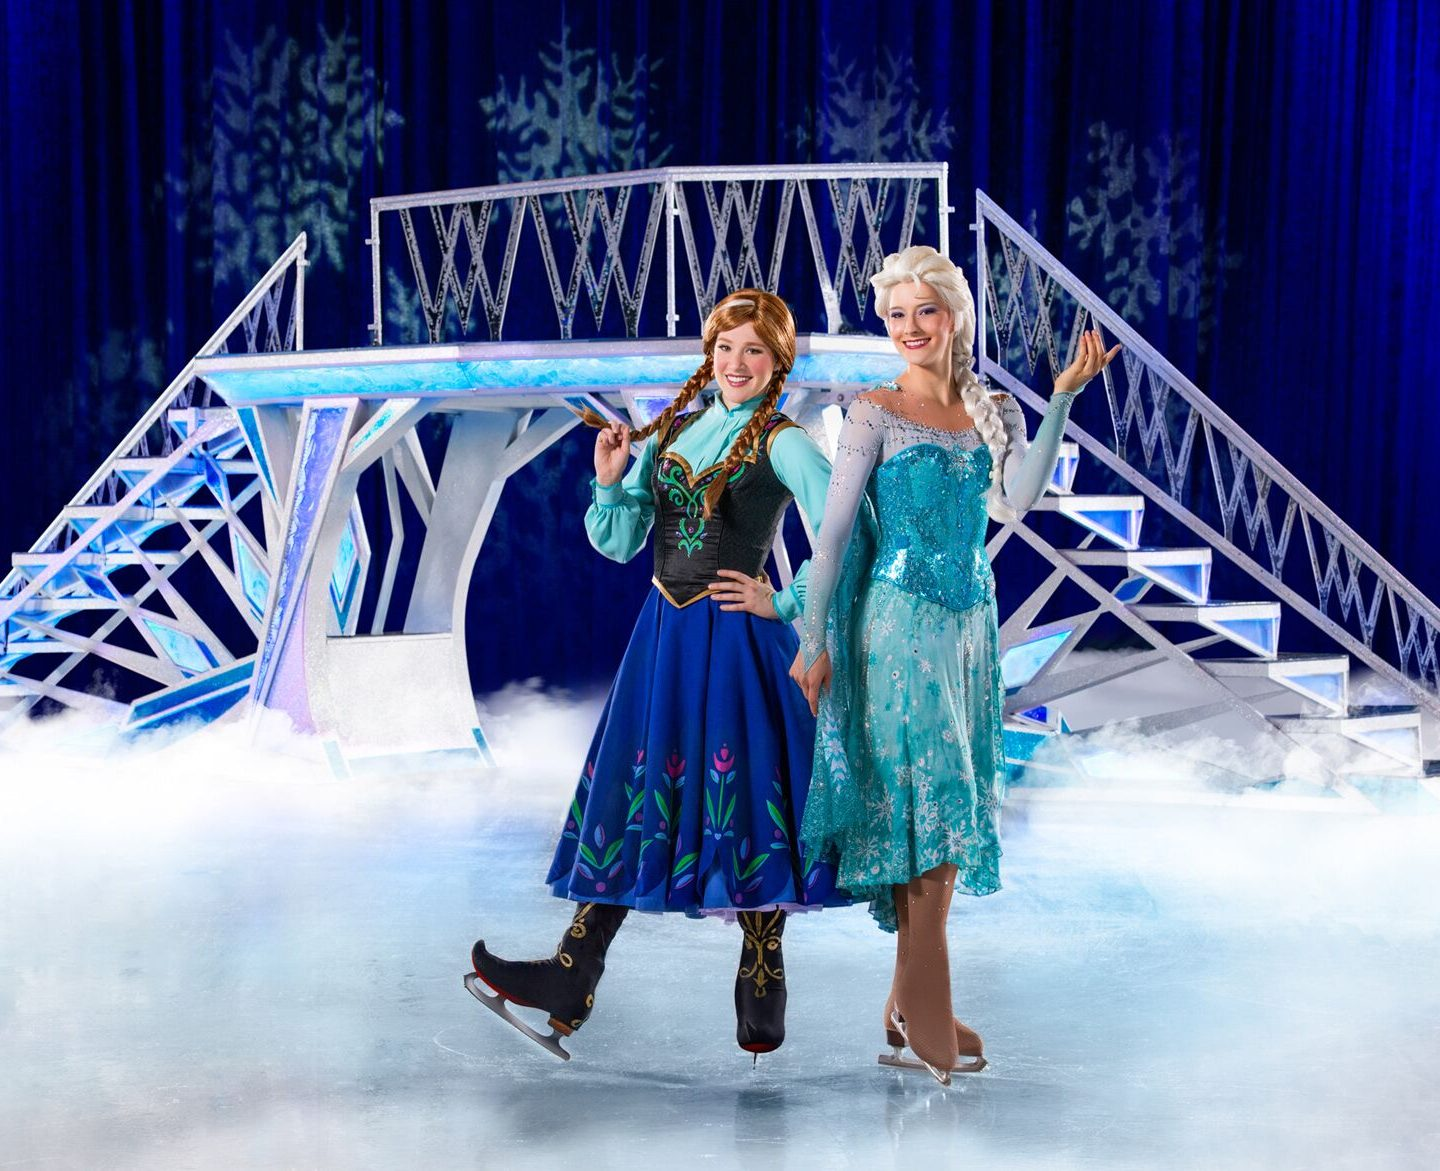 Durban People!! Enter here to WIN 4 x family tickets to Disney On Ice – 'Magical Ice Festival' at @DurbanICC